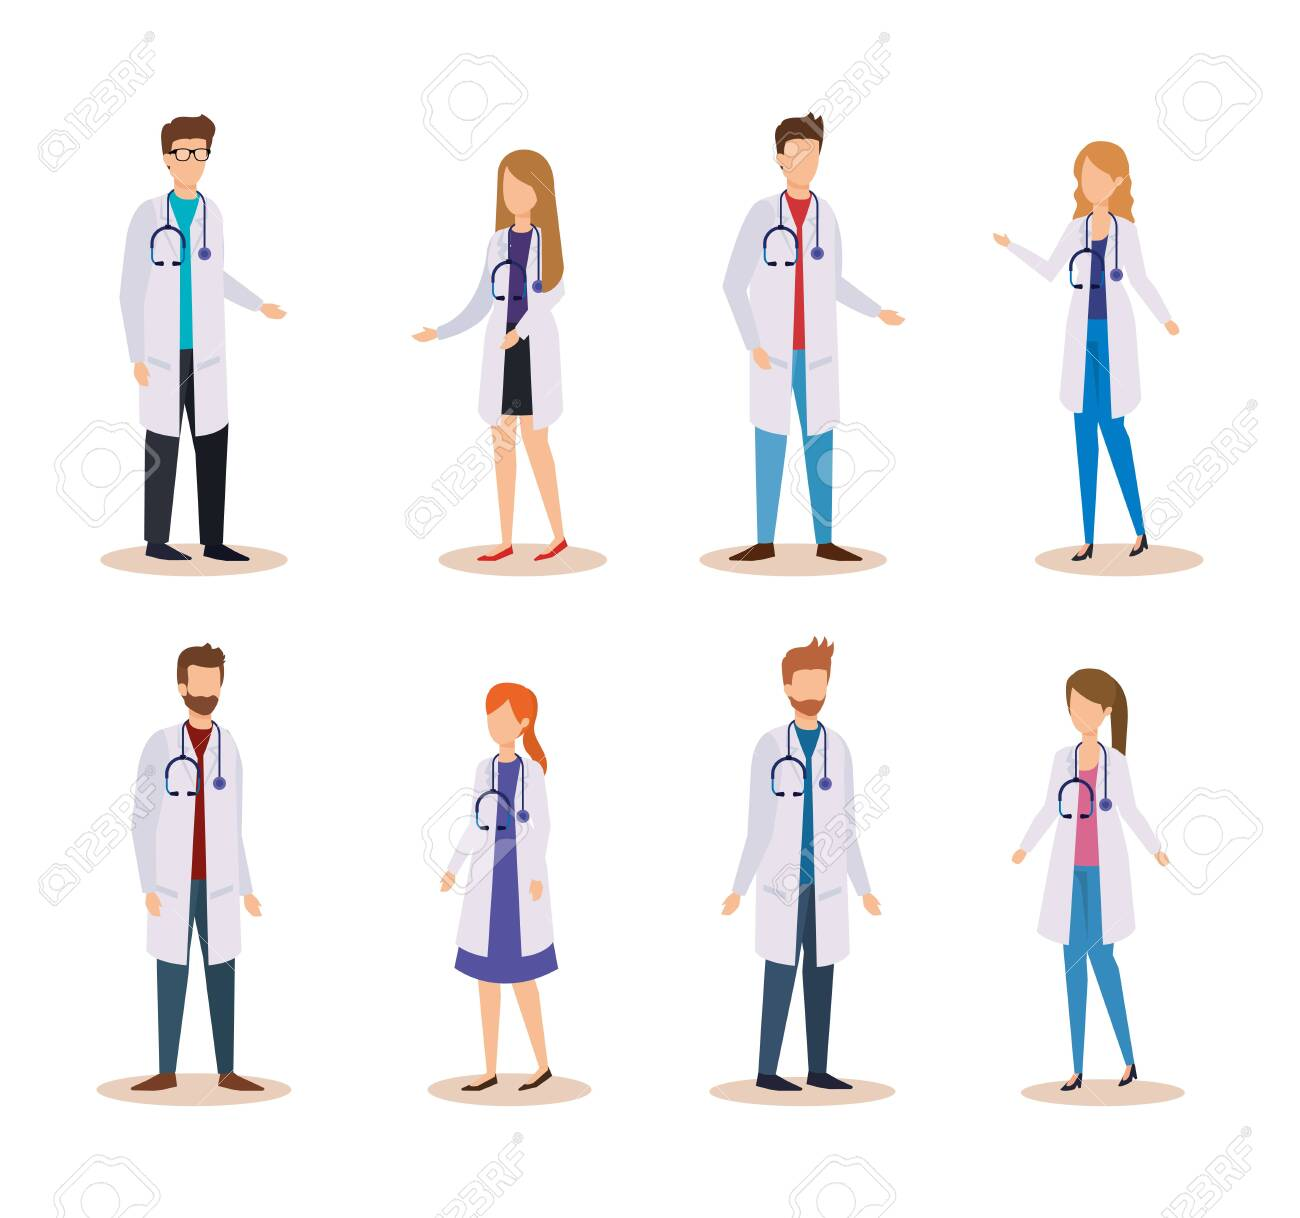 set professional women and men doctors with stethoscope vector illustration - 123488203